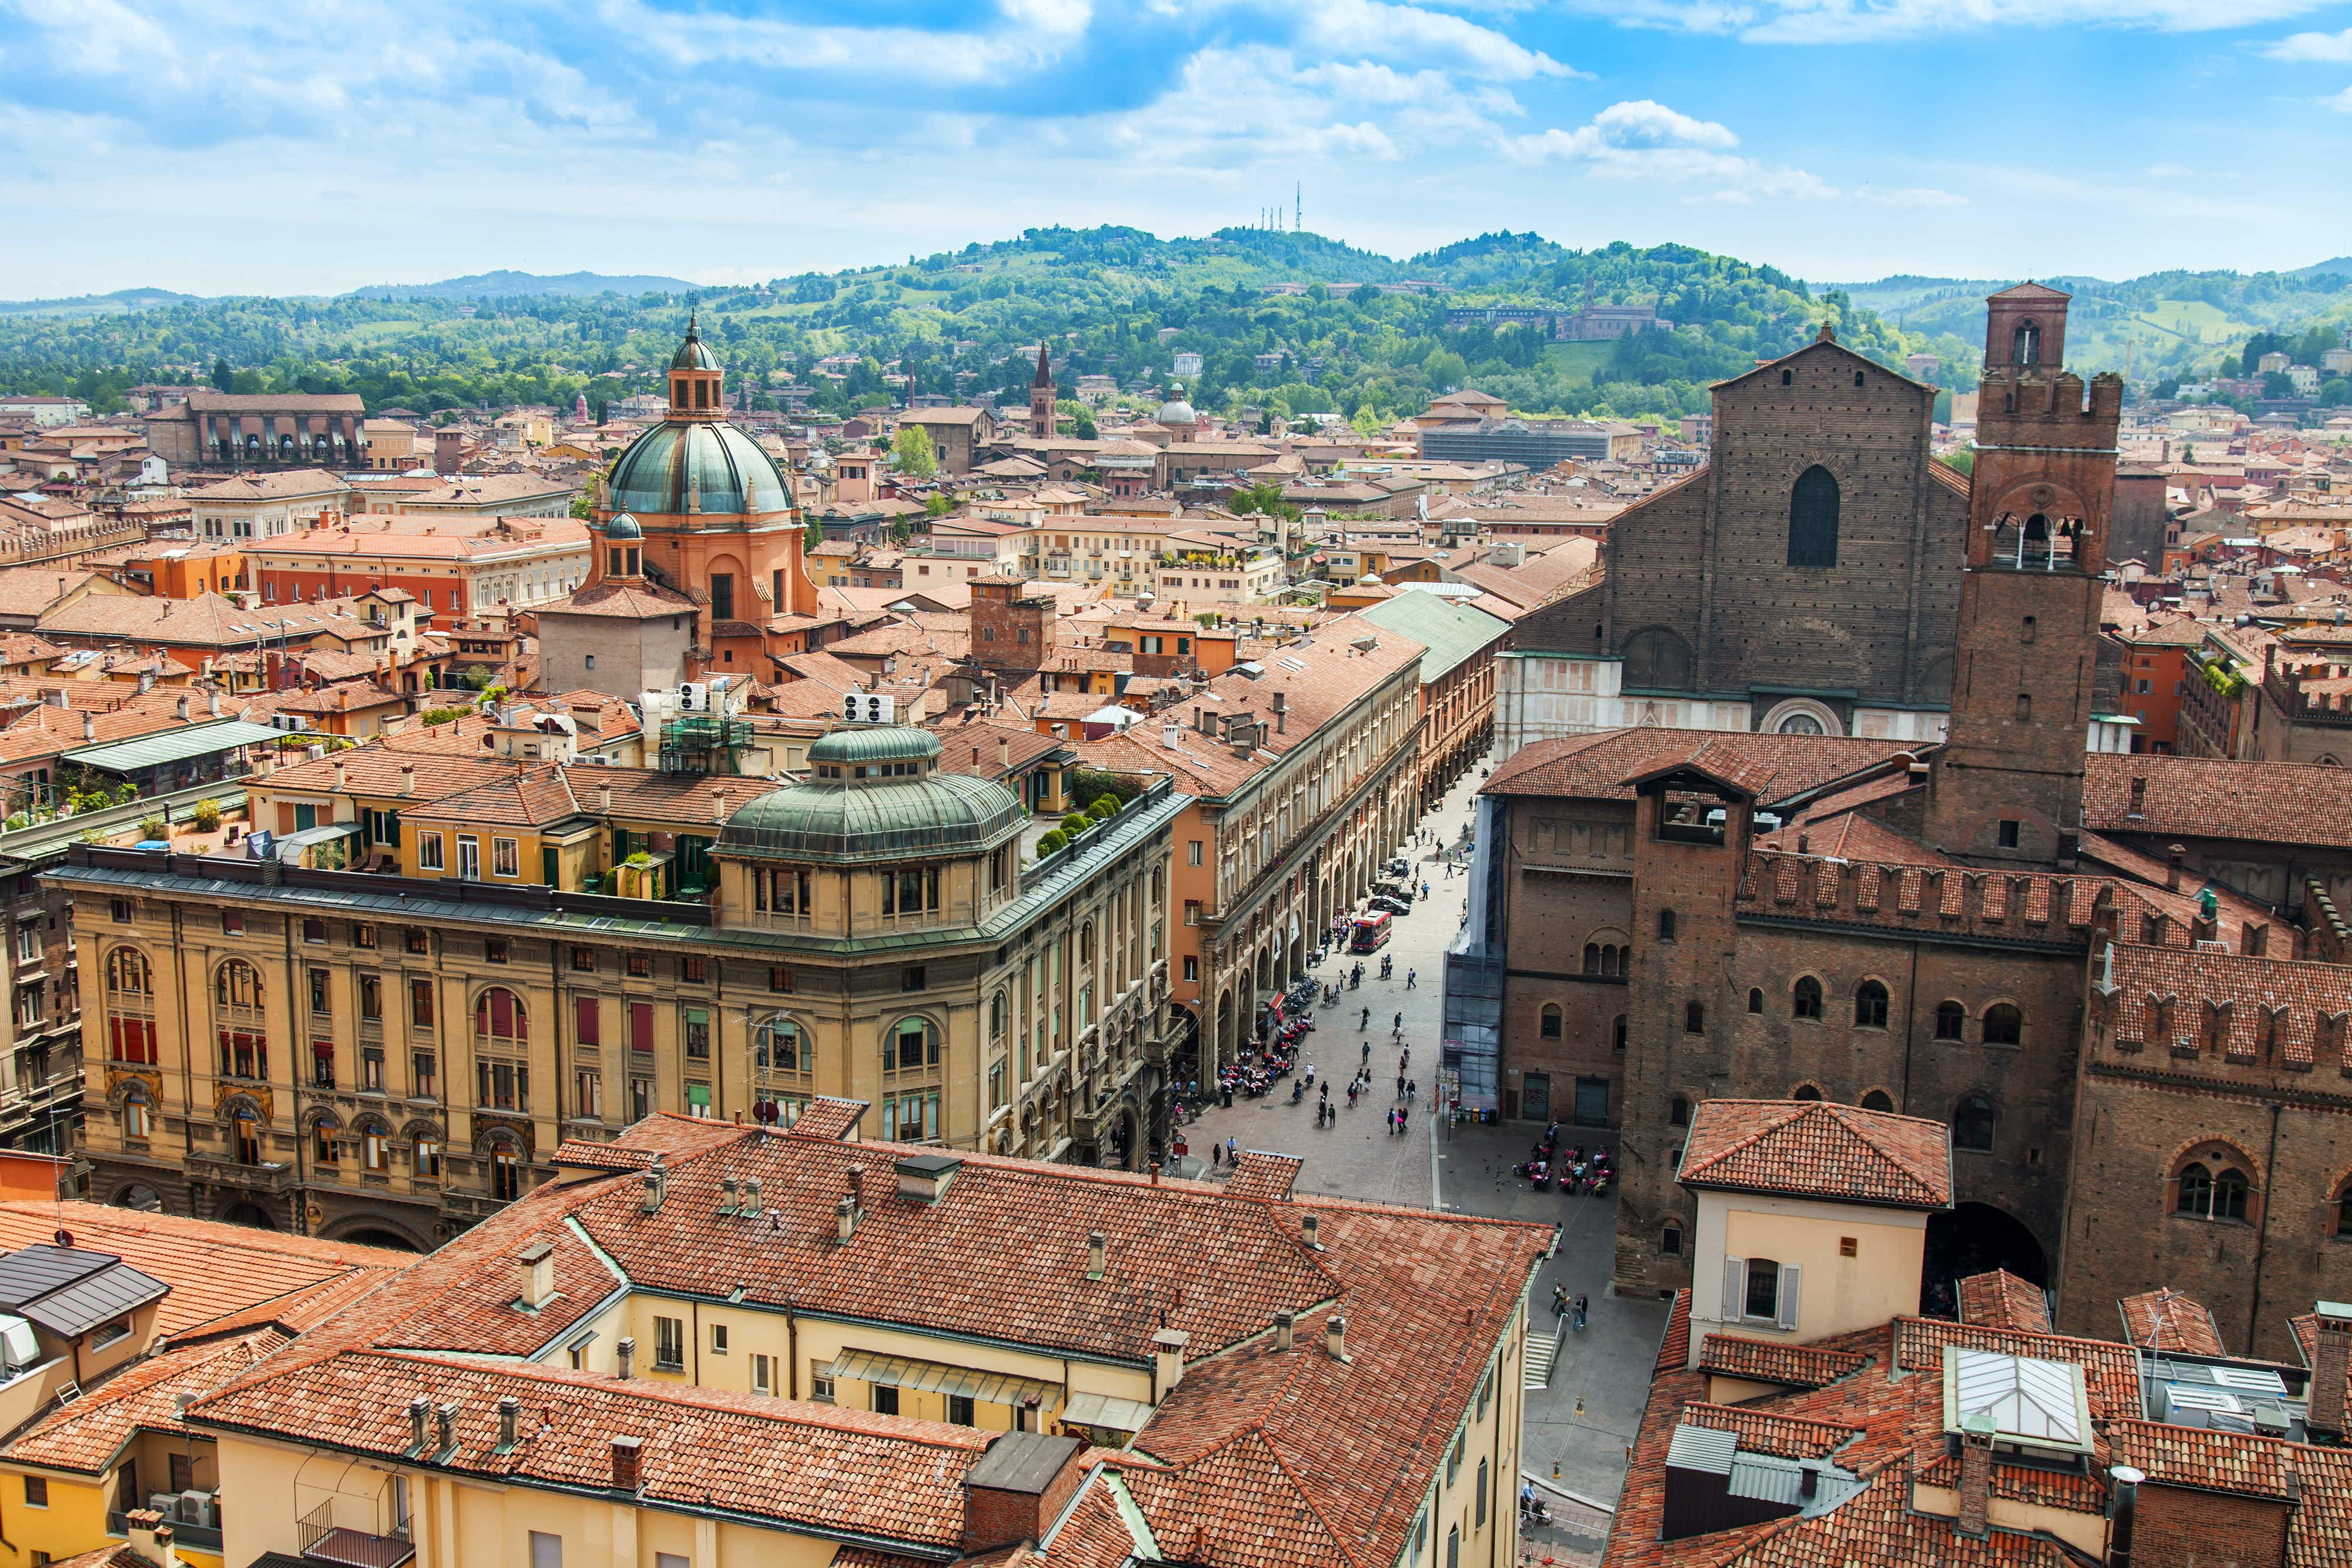 Visit over a dozen of Italy's most famous destinations for $130 with this app